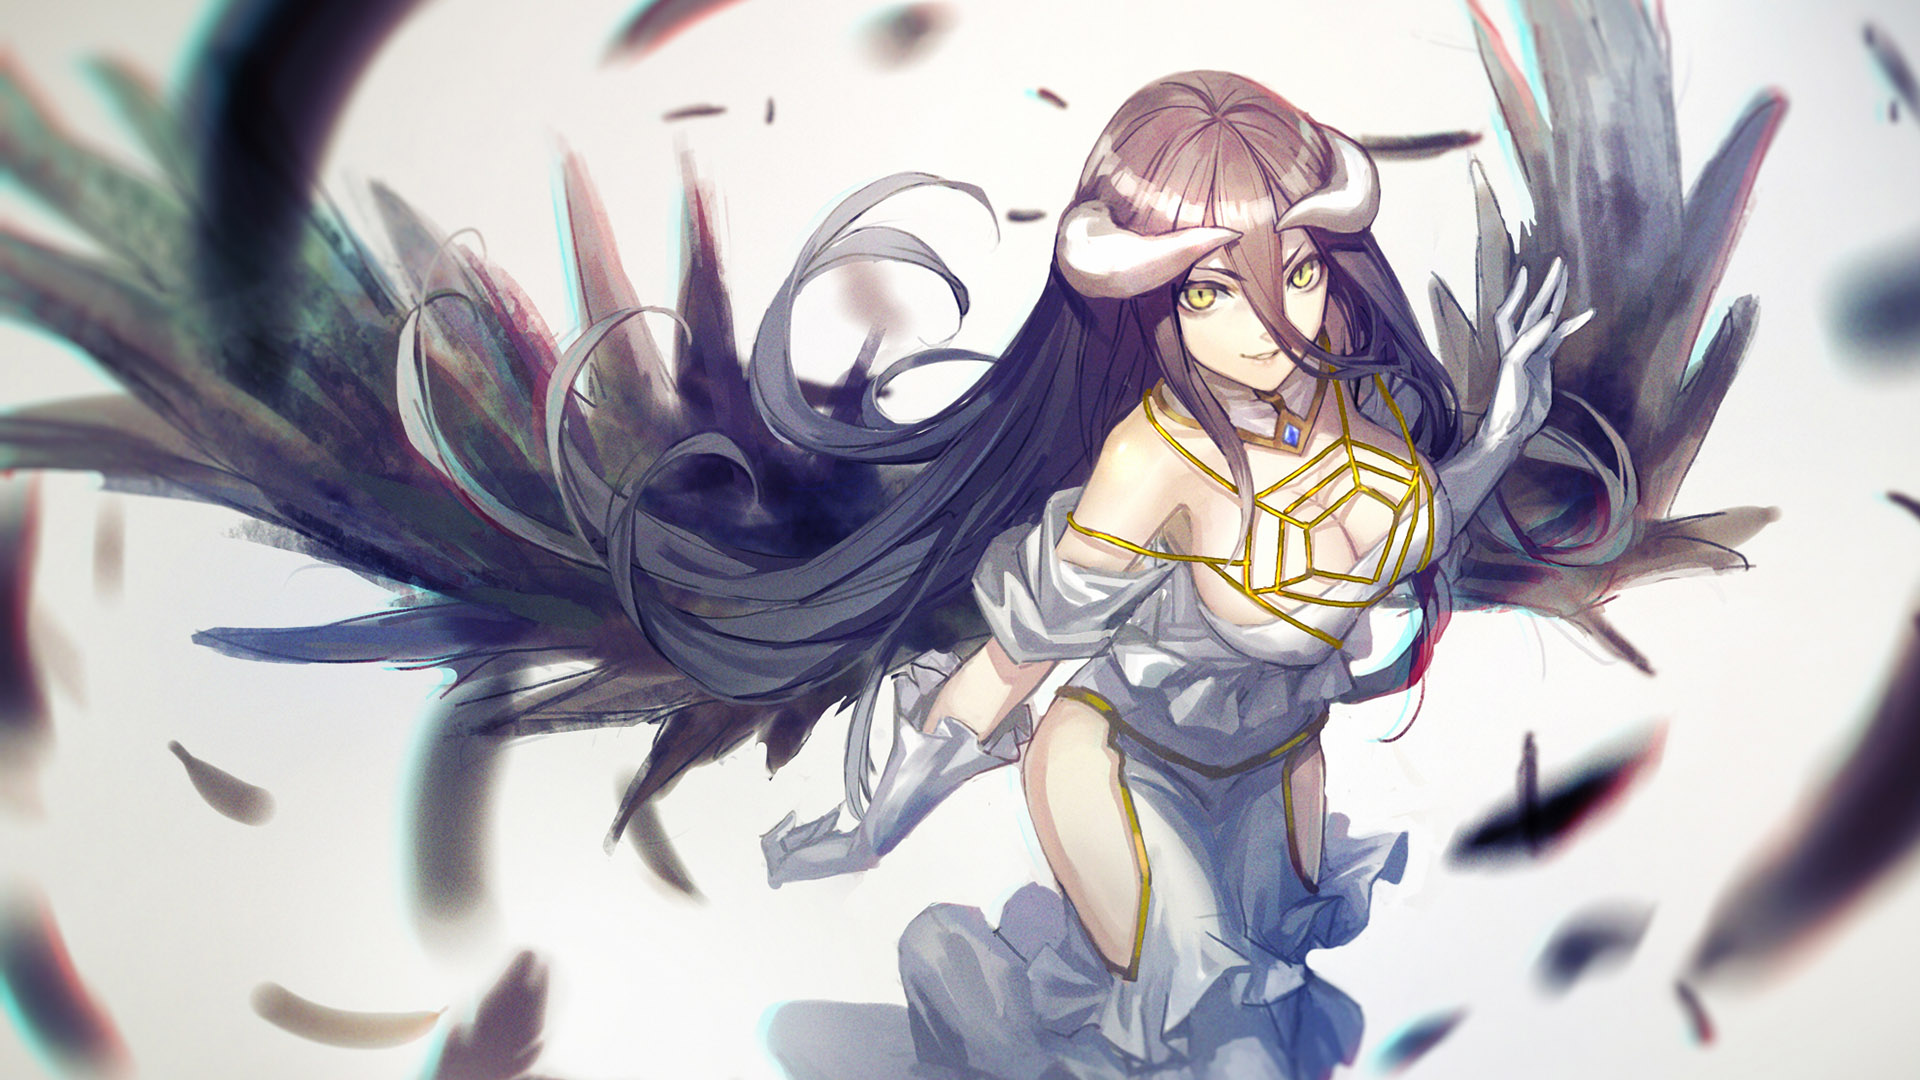 Image Result For Anime Wallpaper Overlord